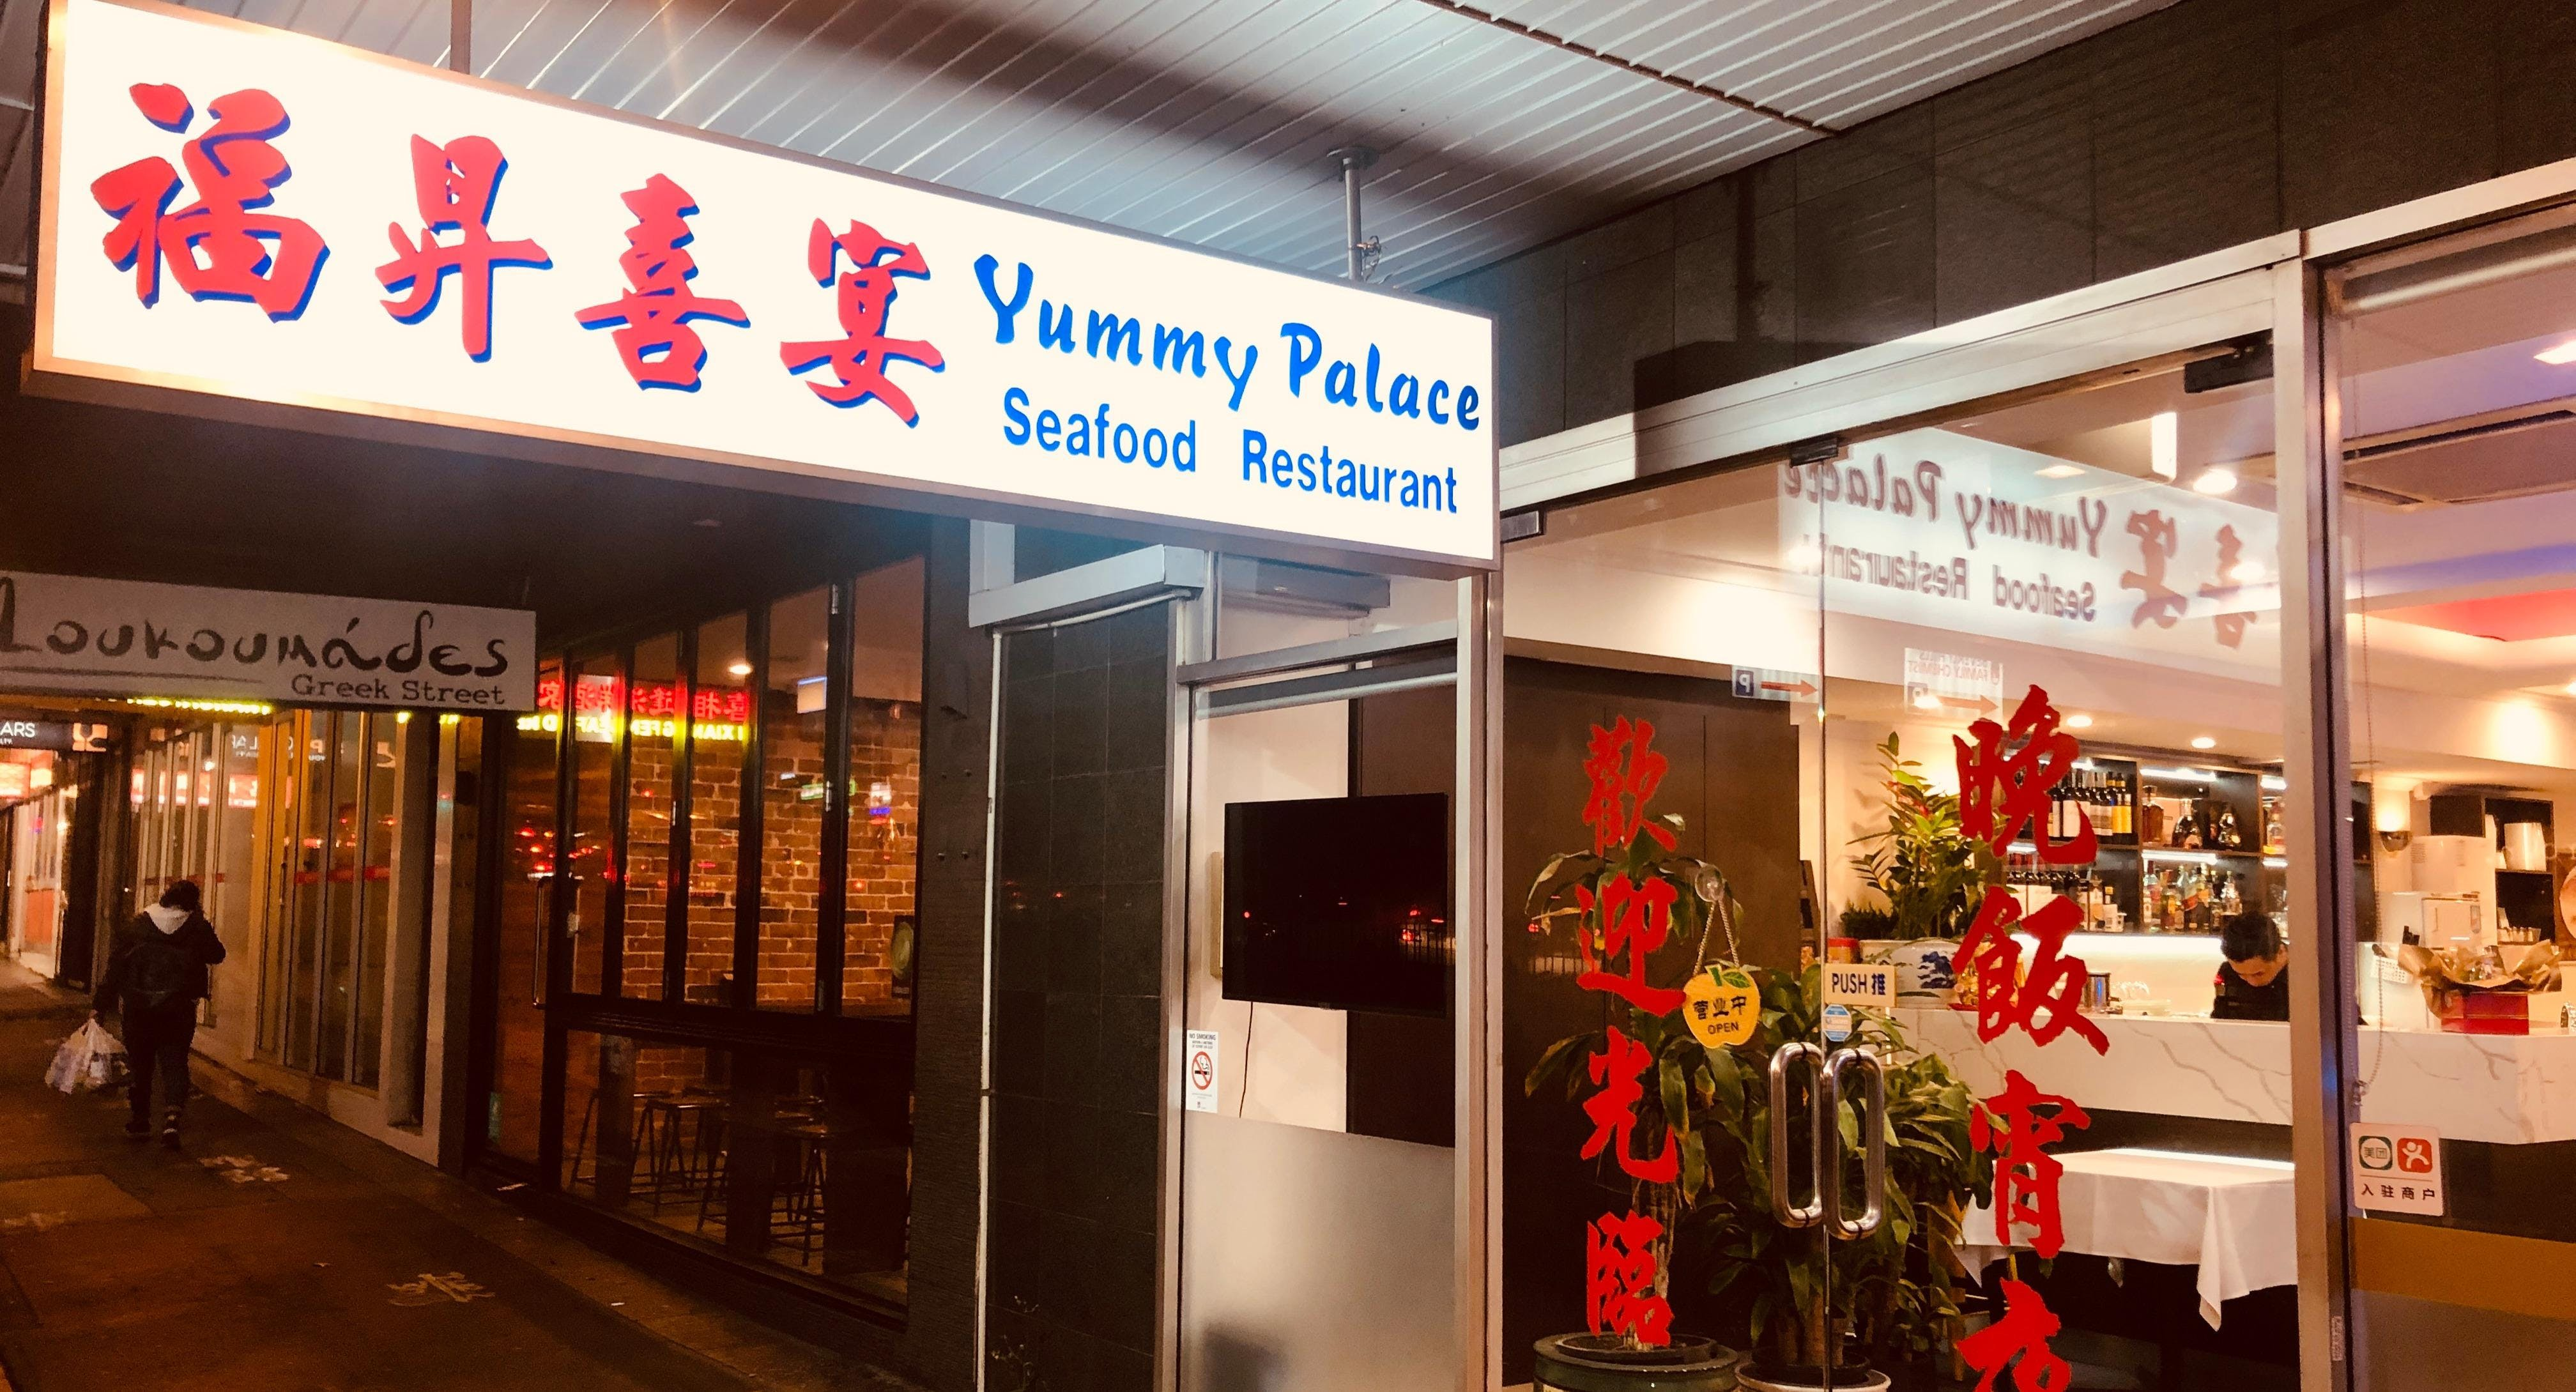 Yummy Palace Seafood Restaurant 福升喜宴